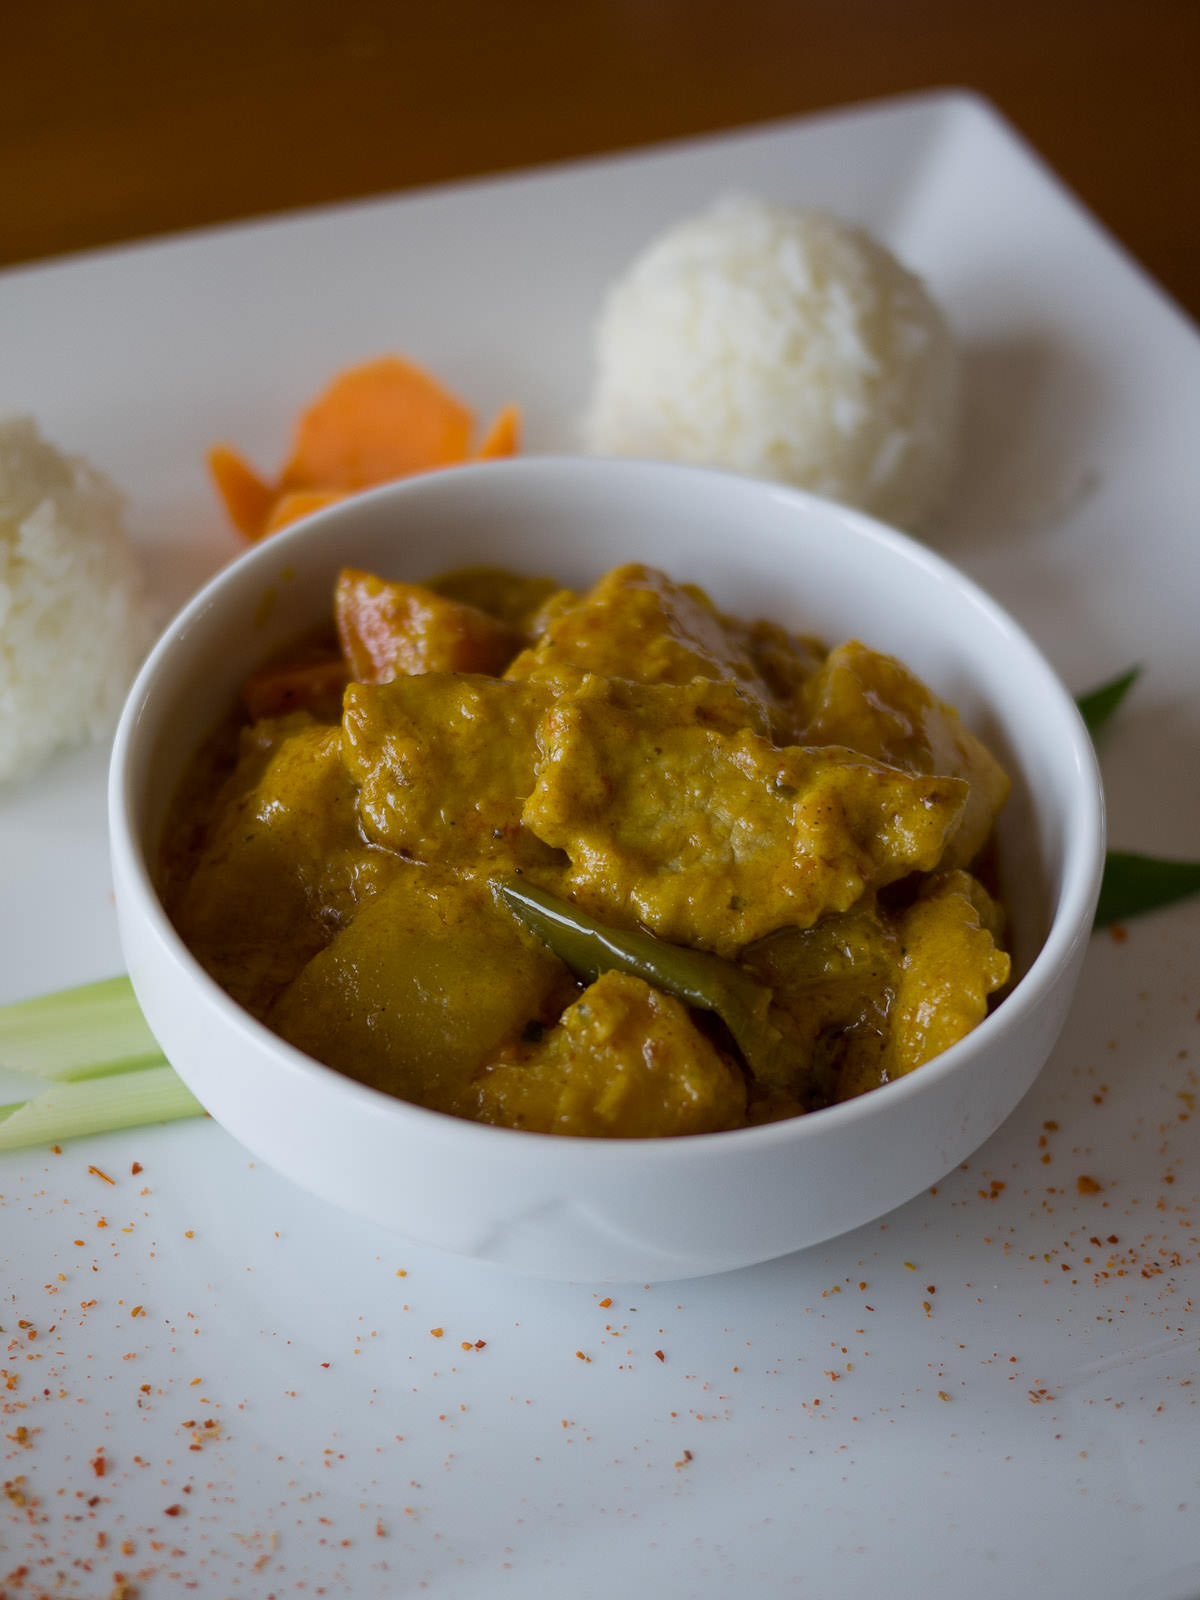 Pork curry Cambodian style with rice